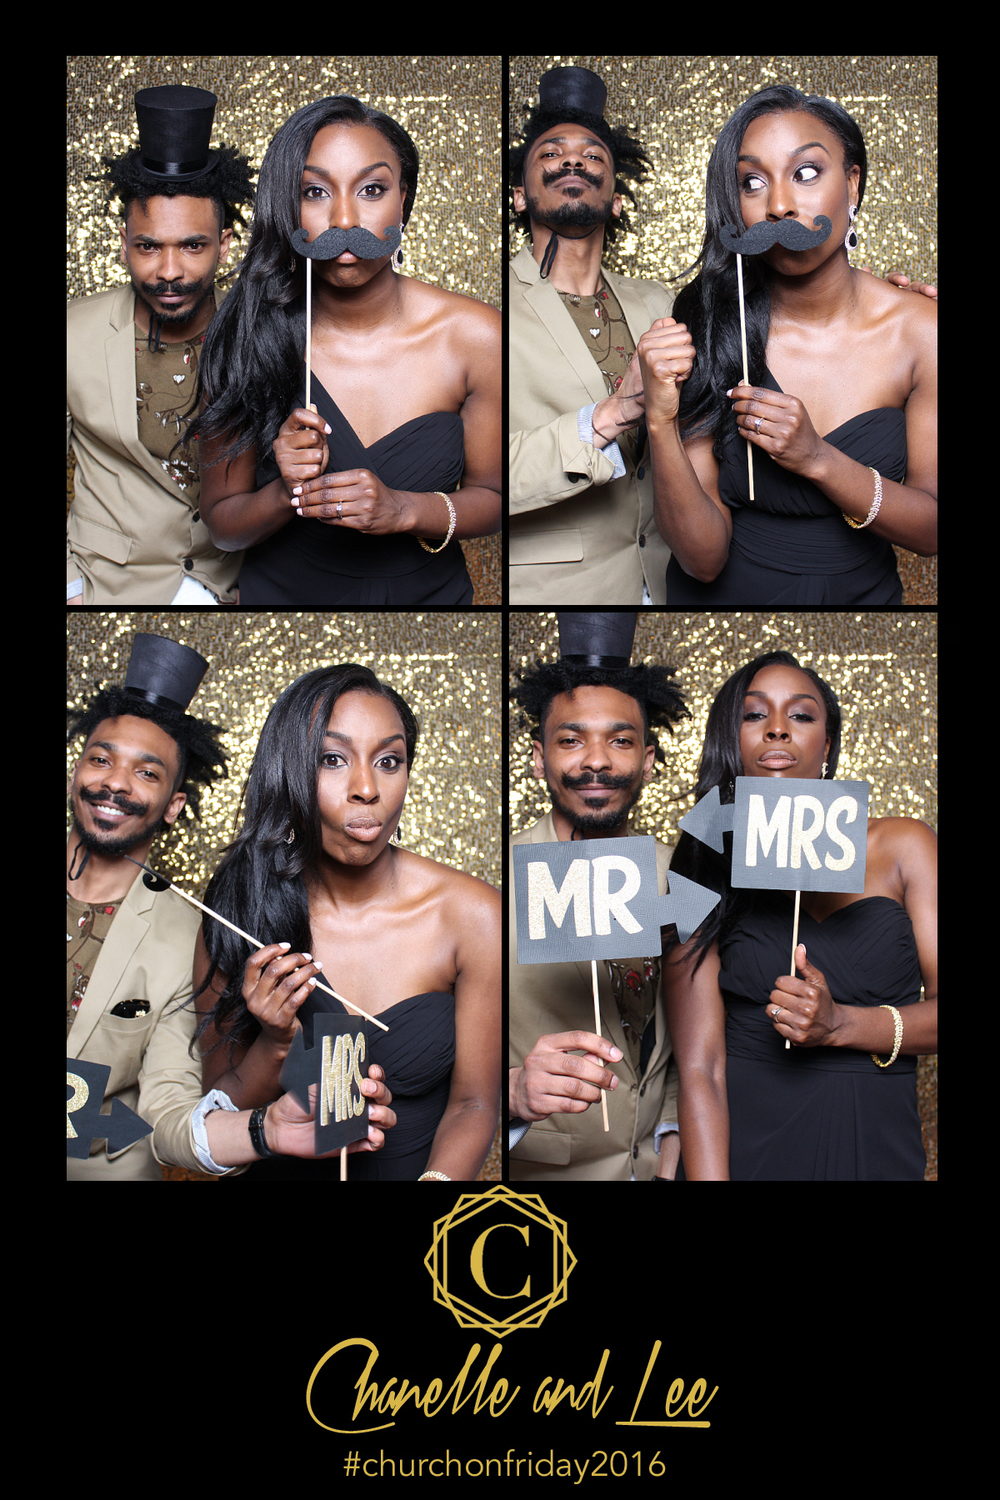 wedding photo booth NYC